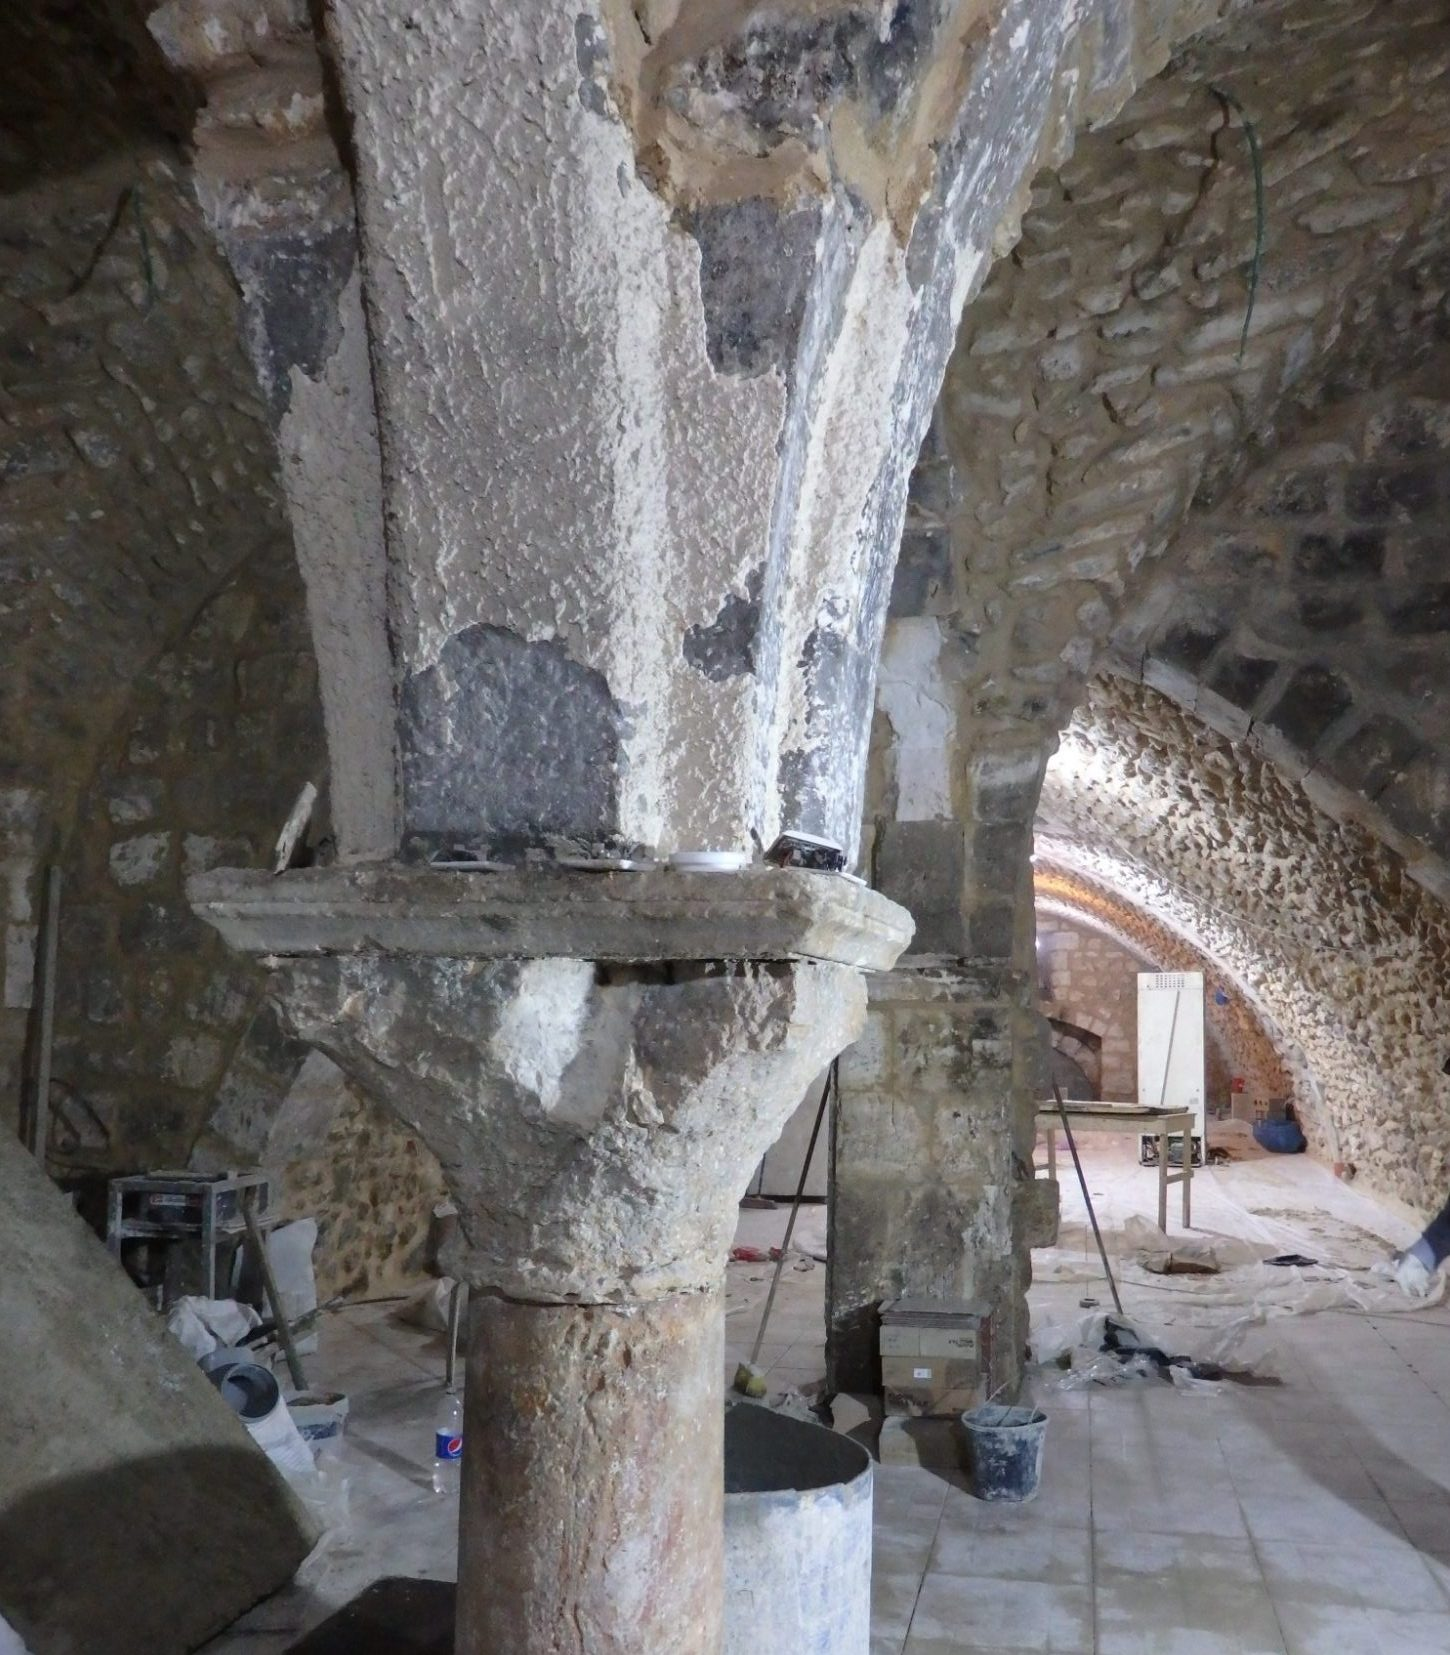 This space was being gutted and renovated to be used as a restaurant in the Muslim Quarter of the Old City of Jerusalem.